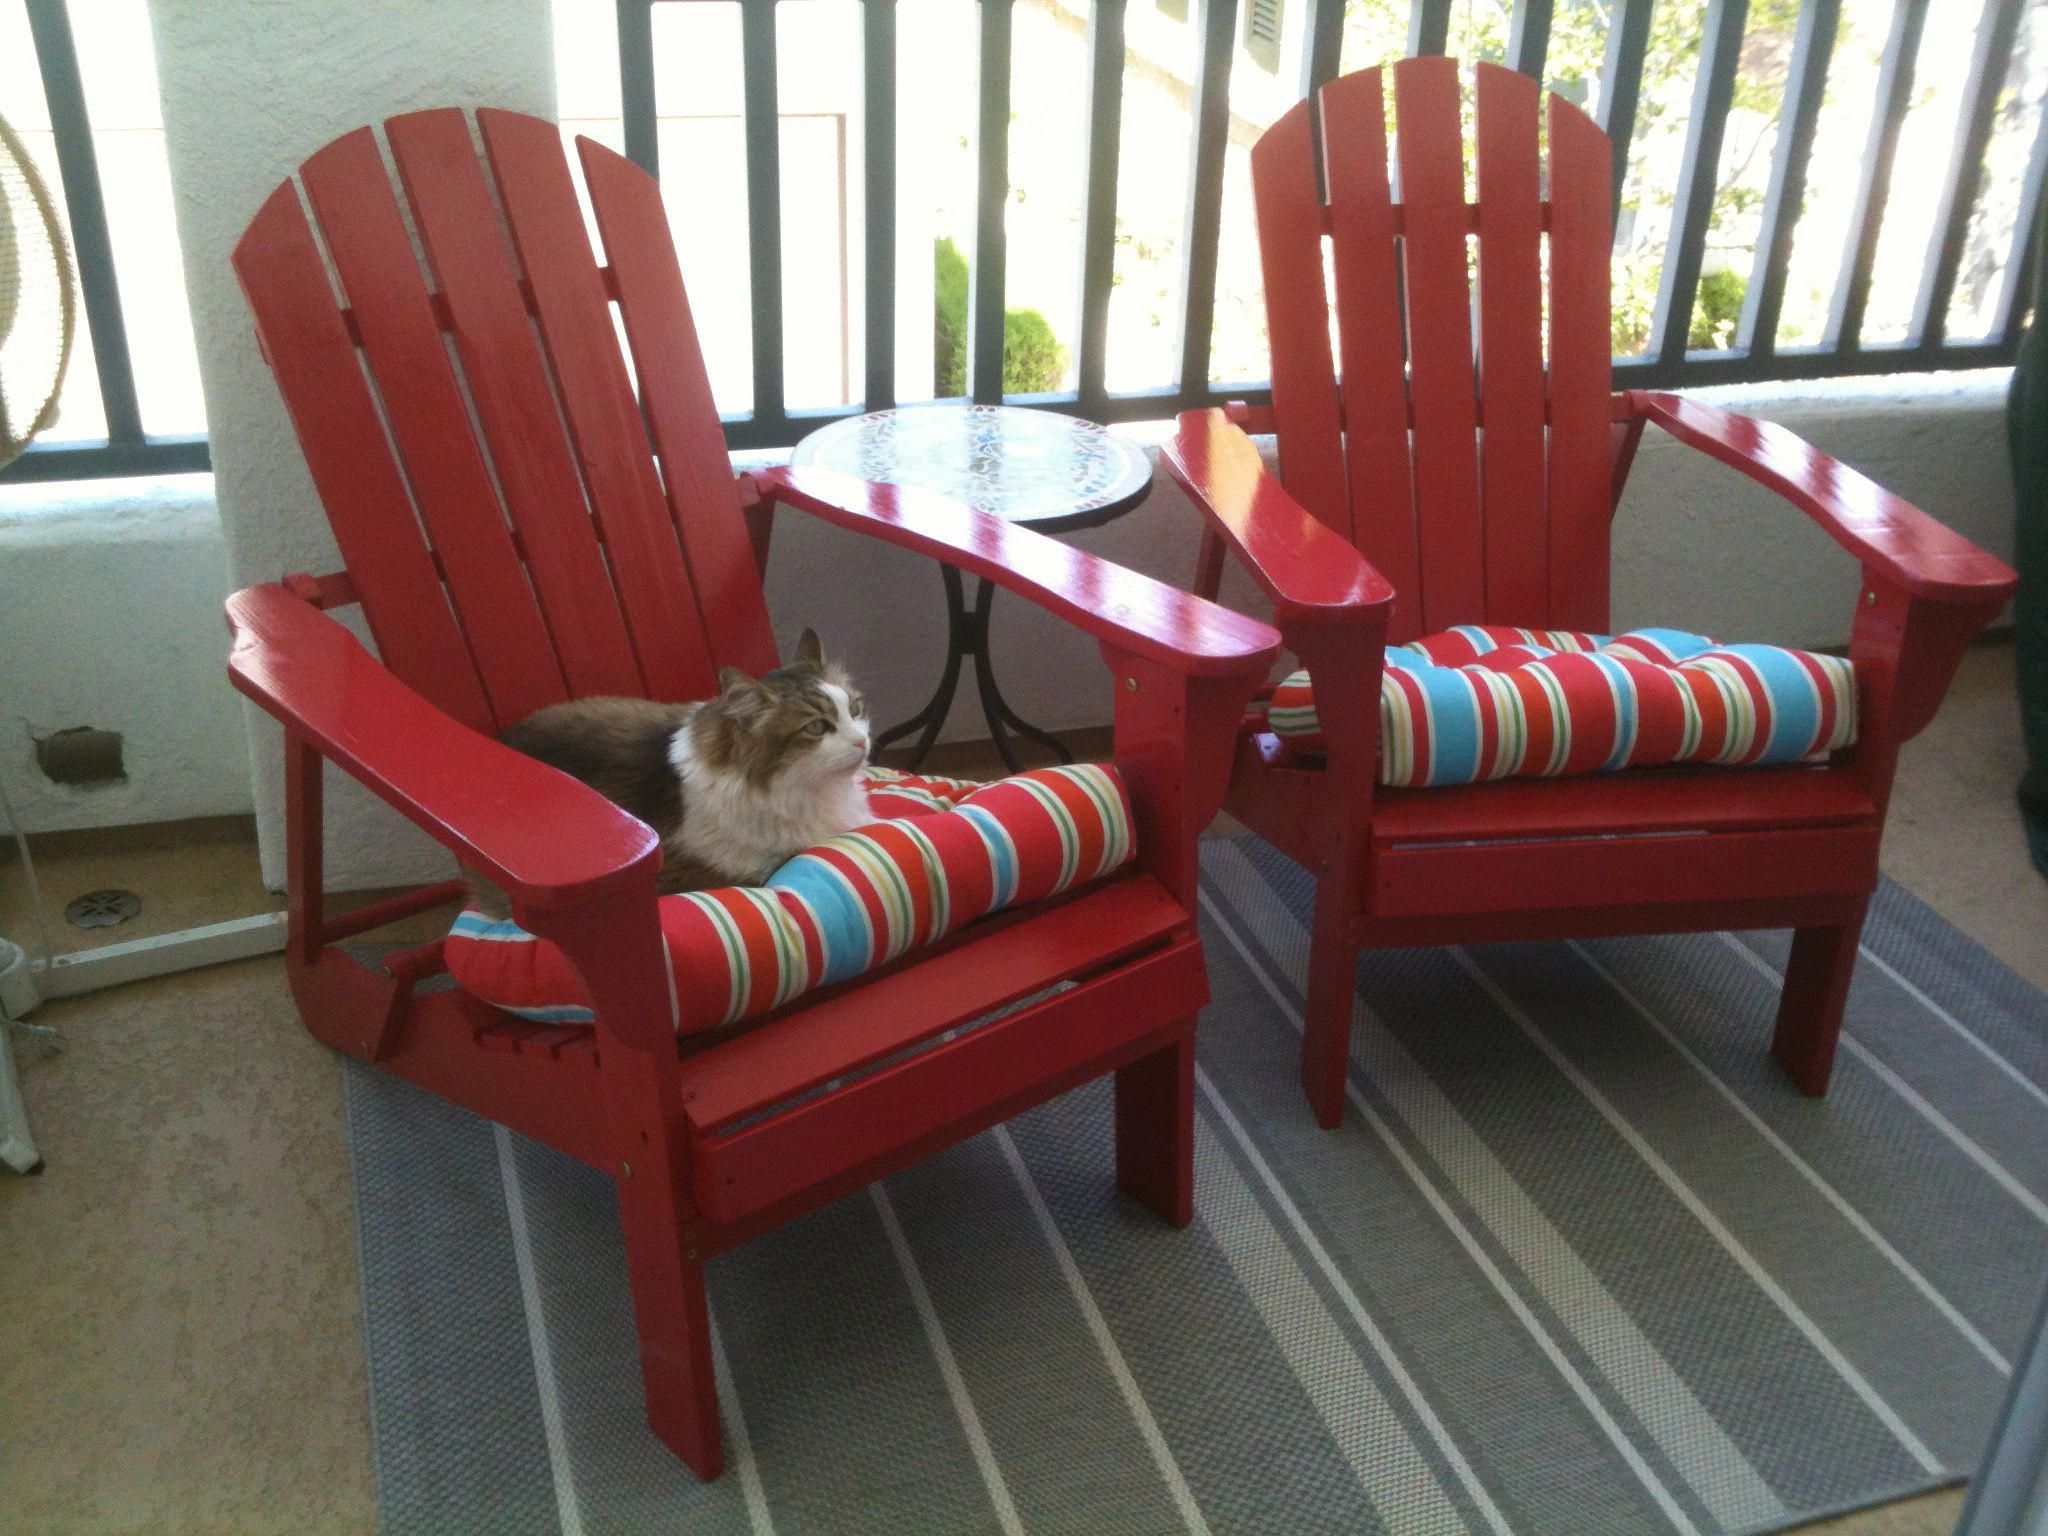 Folding Adirondack Chairs And Chair Pads From Marshall S Mosaic Table Cost Plus Crate Barrel Outdoor Rug Precious Cat Enjoying The New Patio